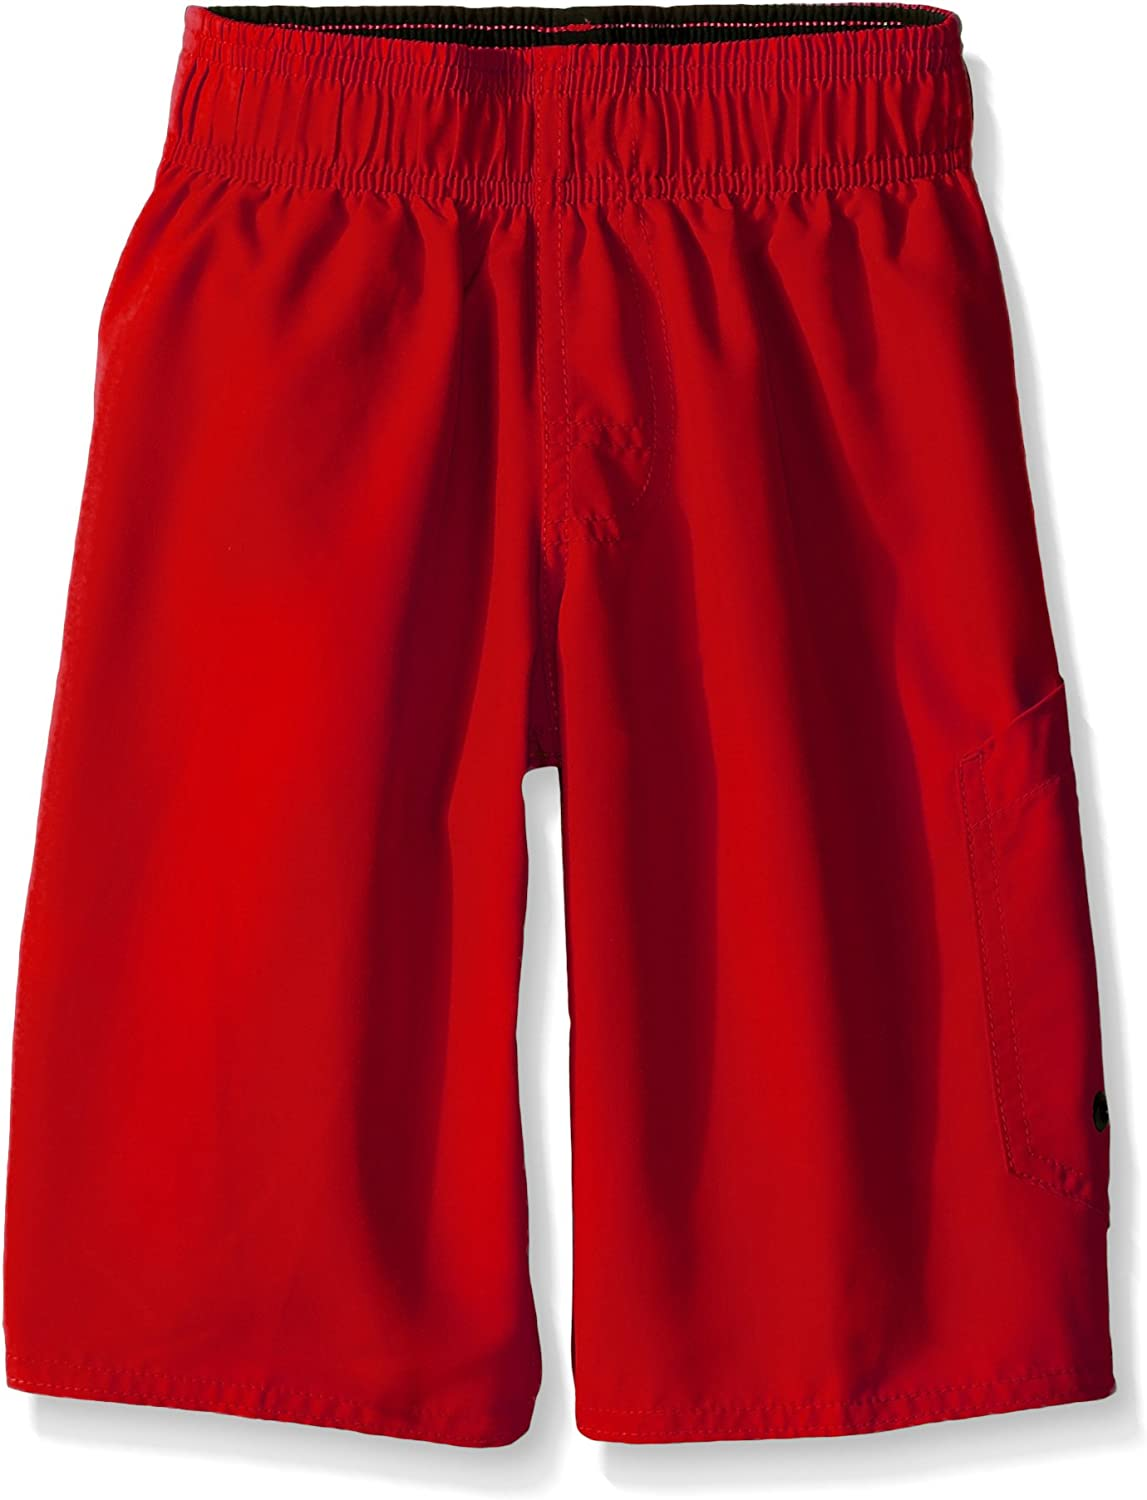 Speedo Boy's Swim Trunk Knee Length Marina Volley Youth - Manufacturer Discontinued